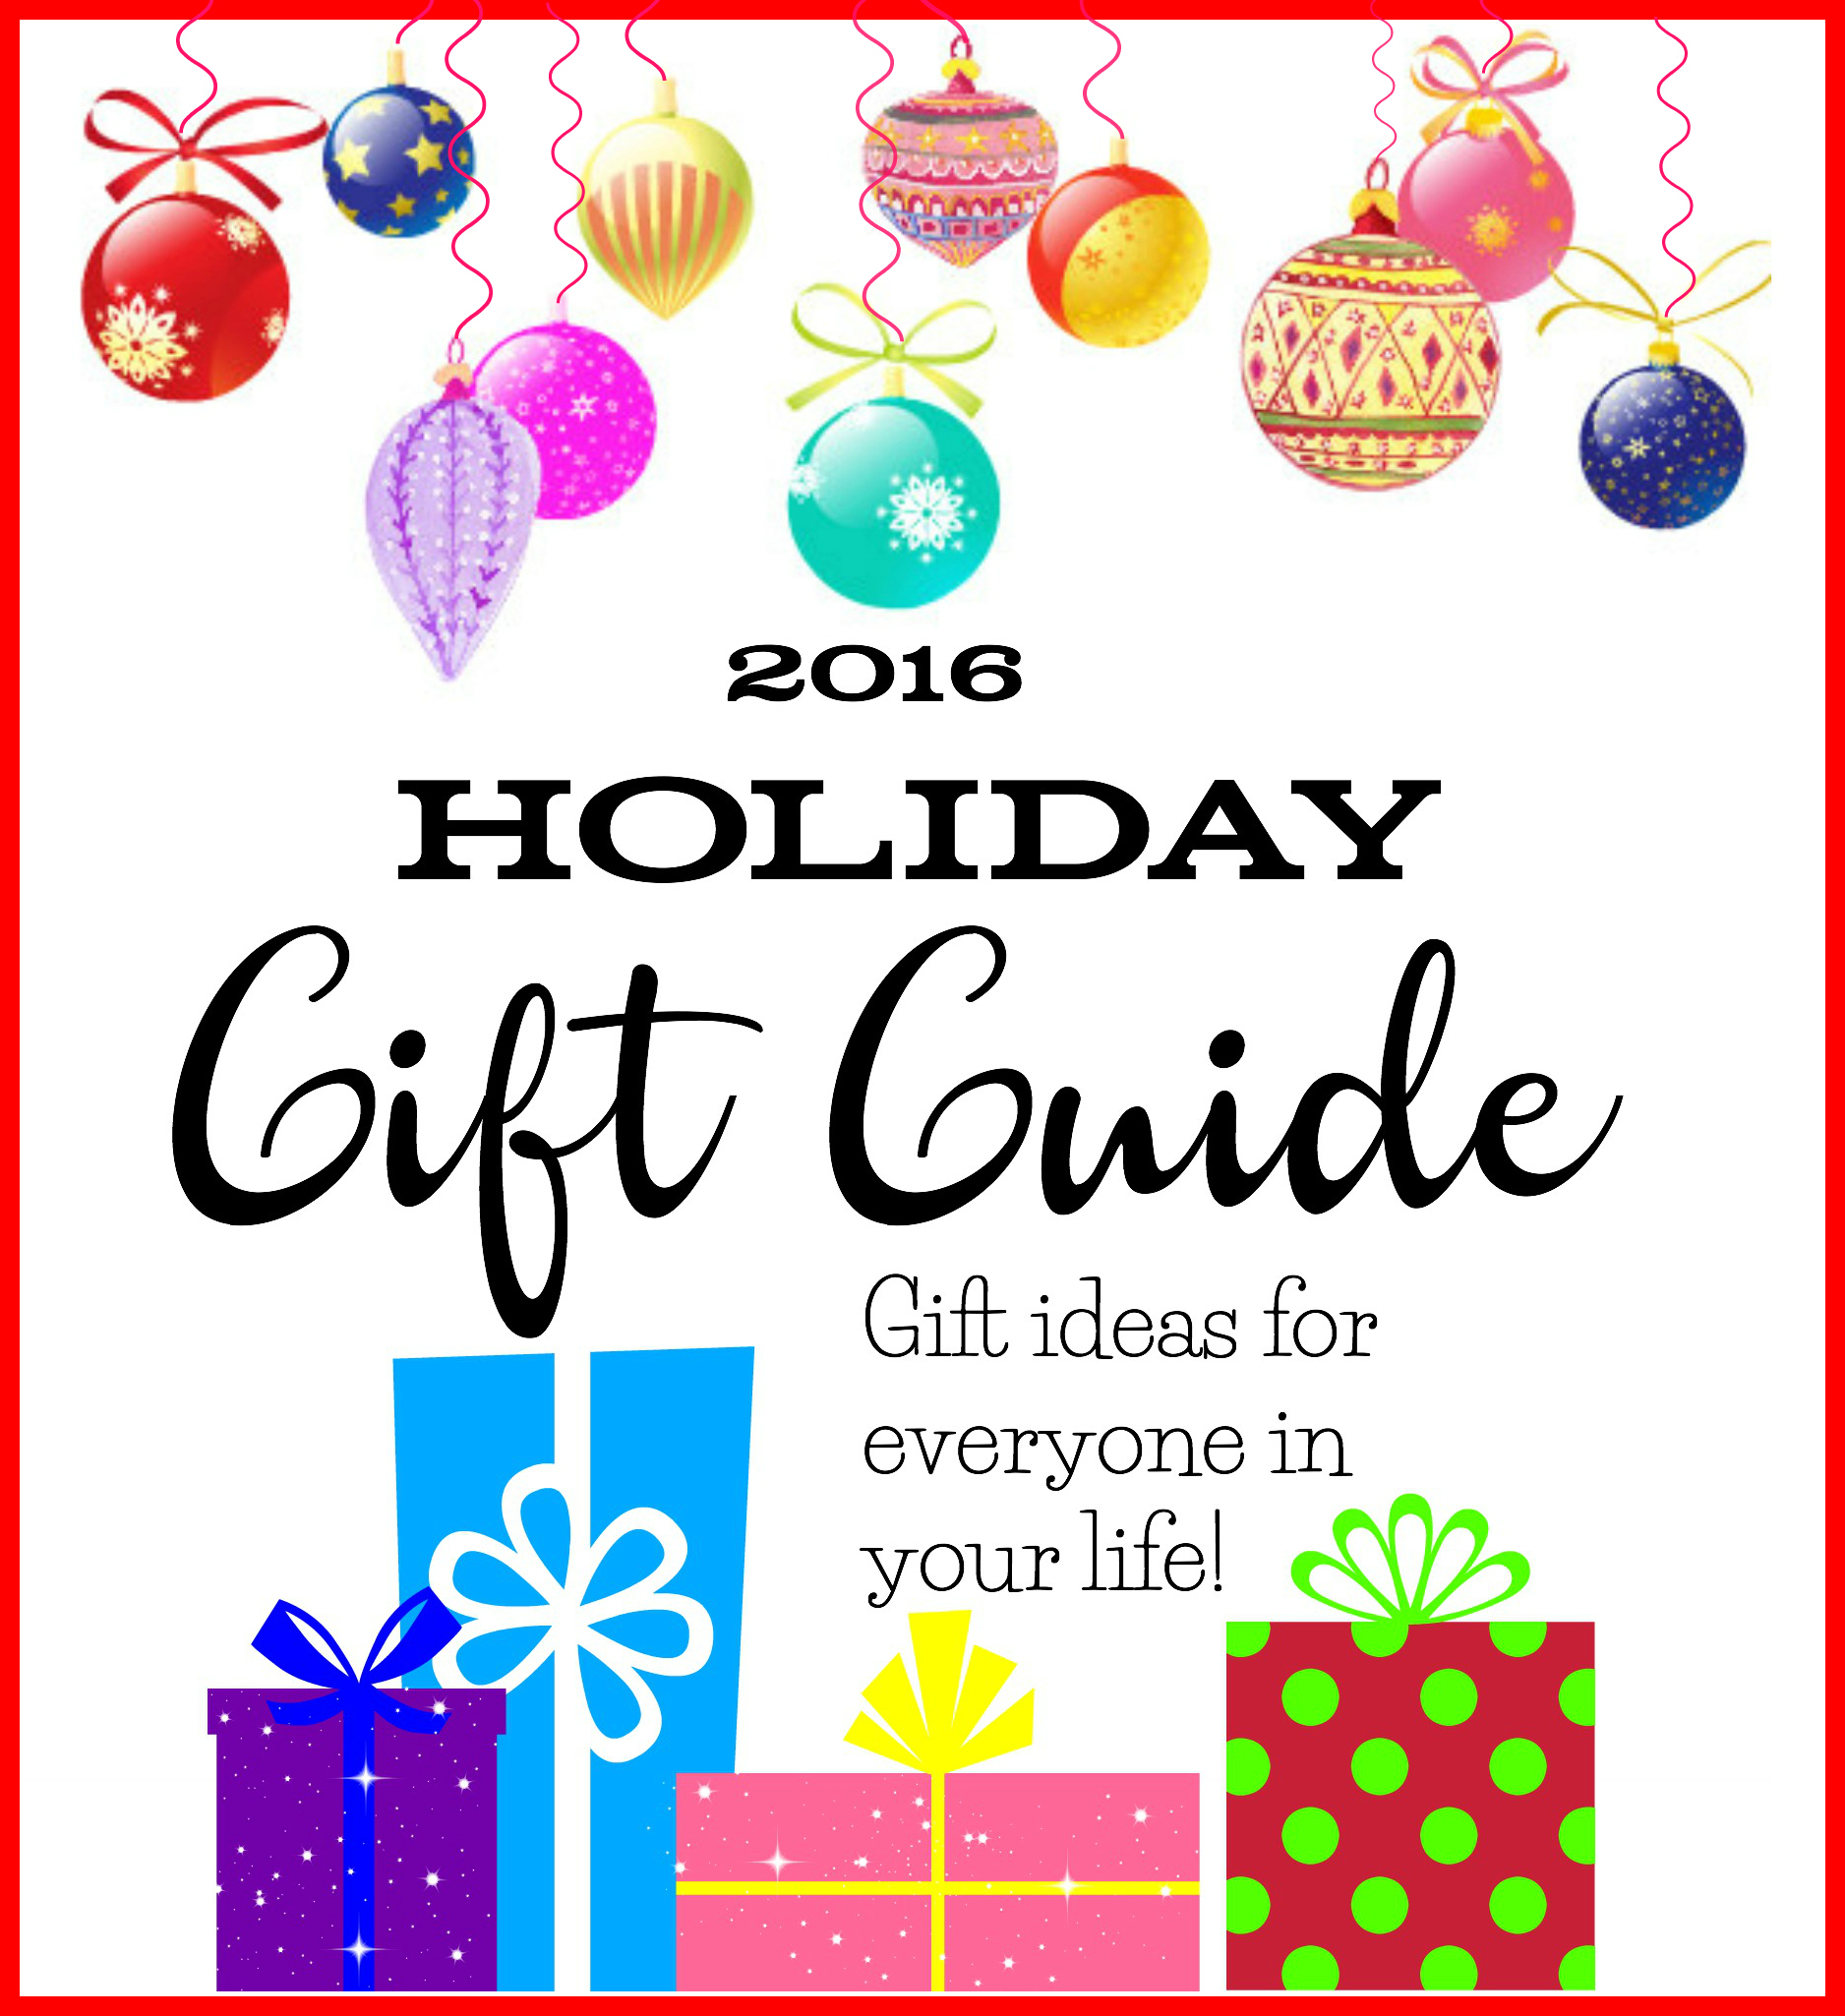 2016 Holiday Gift Guide from The Binder Ladies - gifts for teens, gifts for men, gifts for kids, gifts for couples, and more